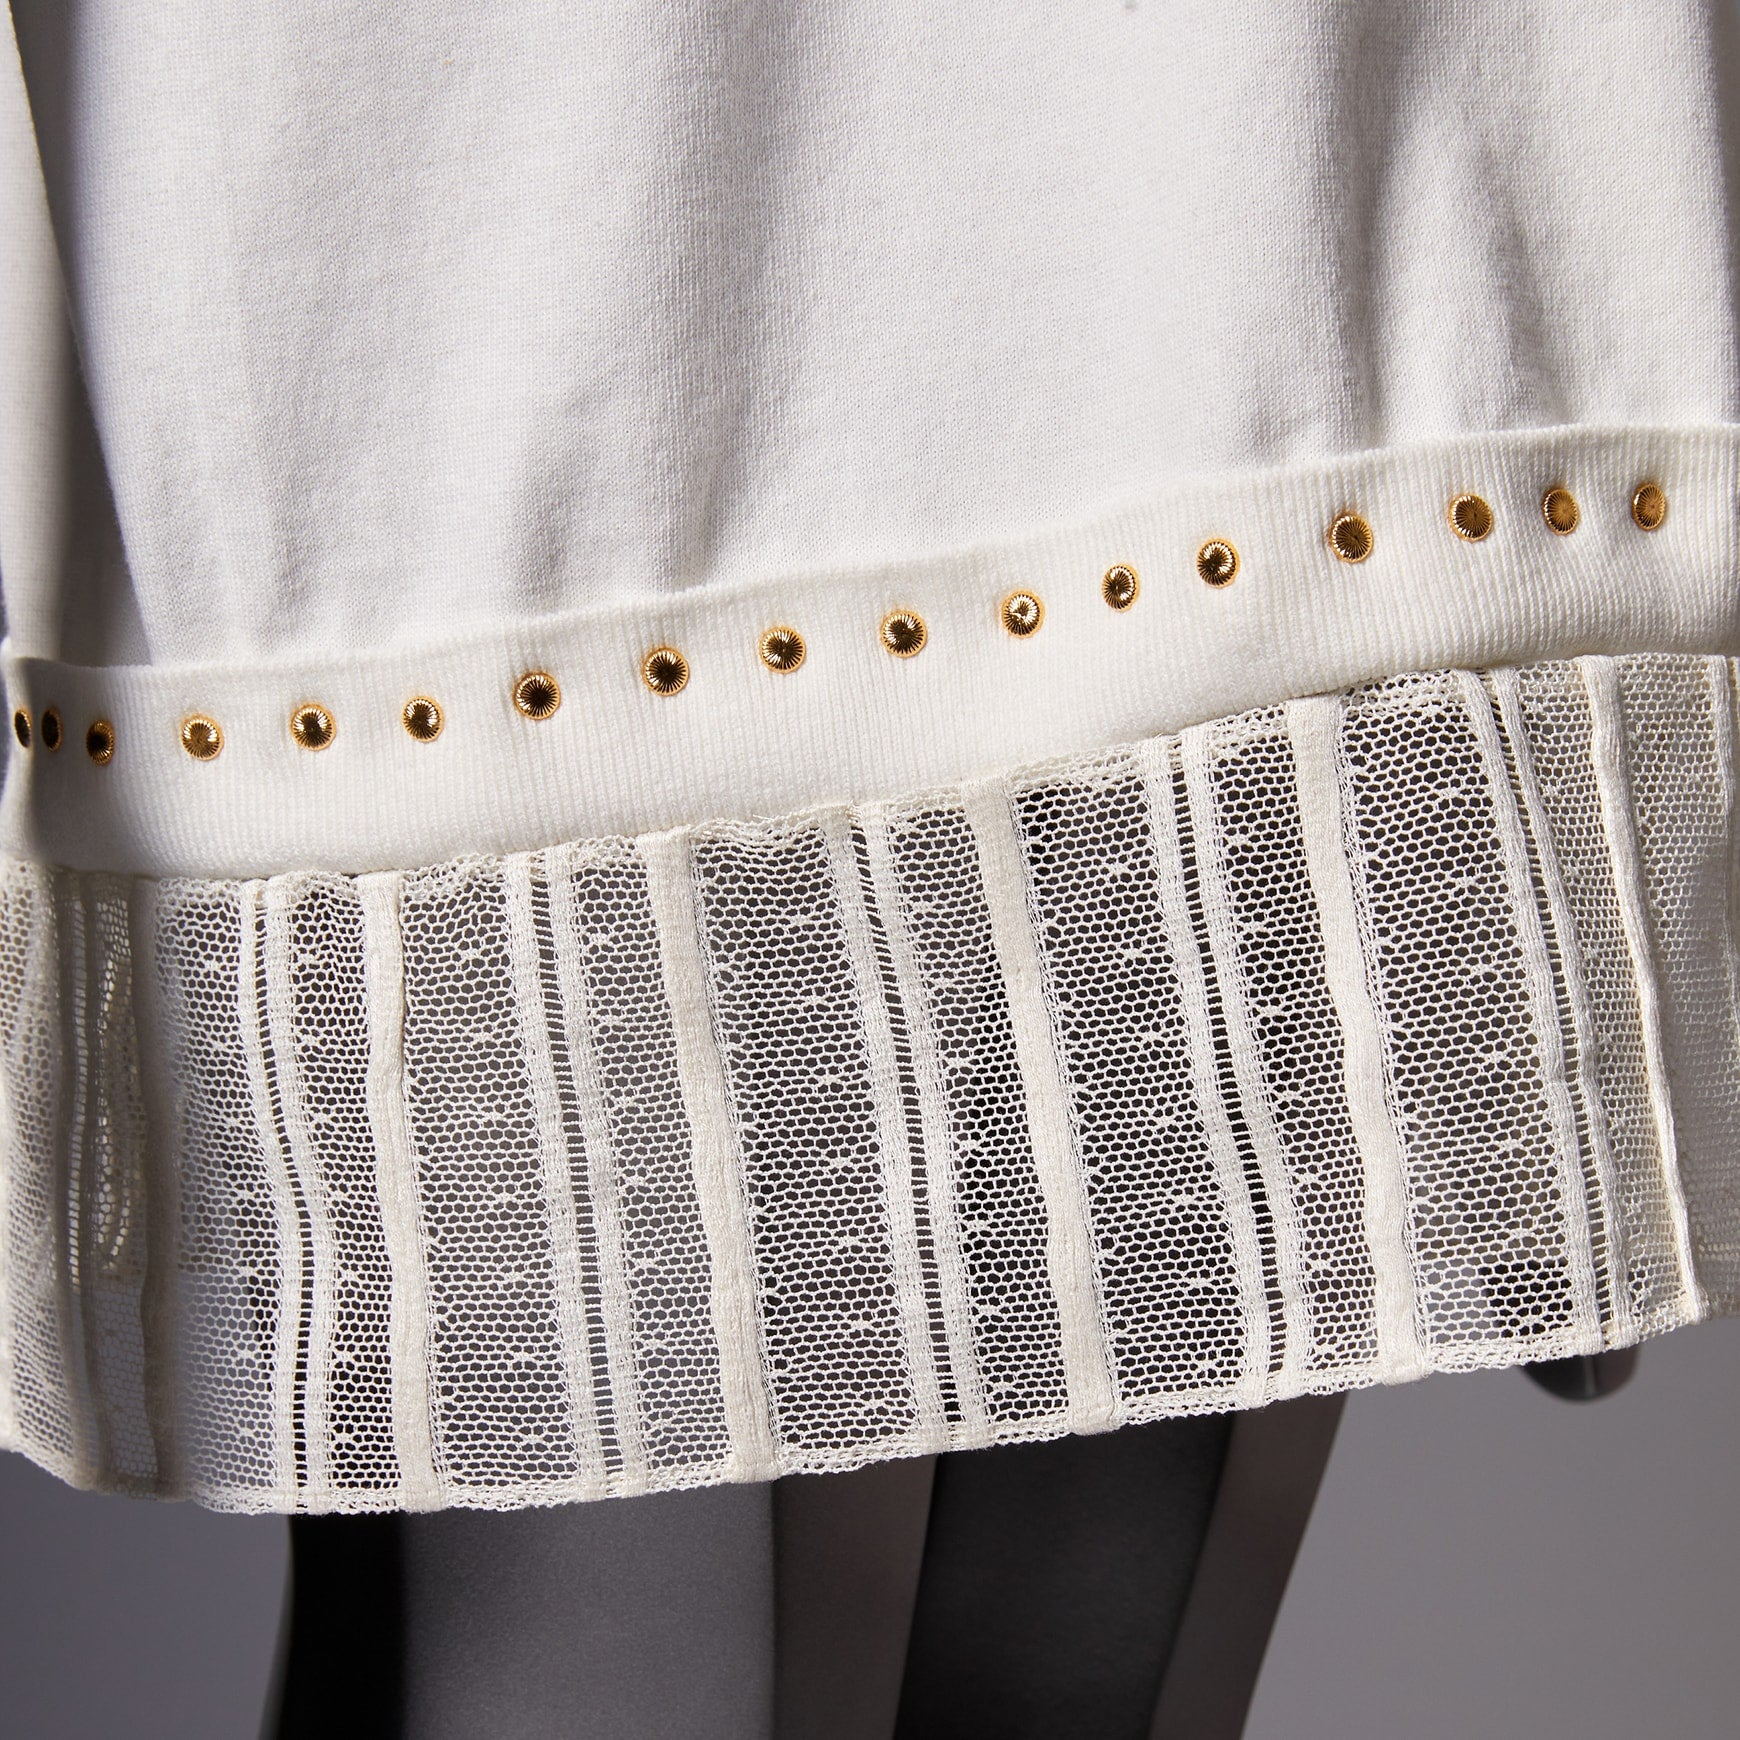 TYPE-1 Knit French Lace Waist Part (White Stripes)